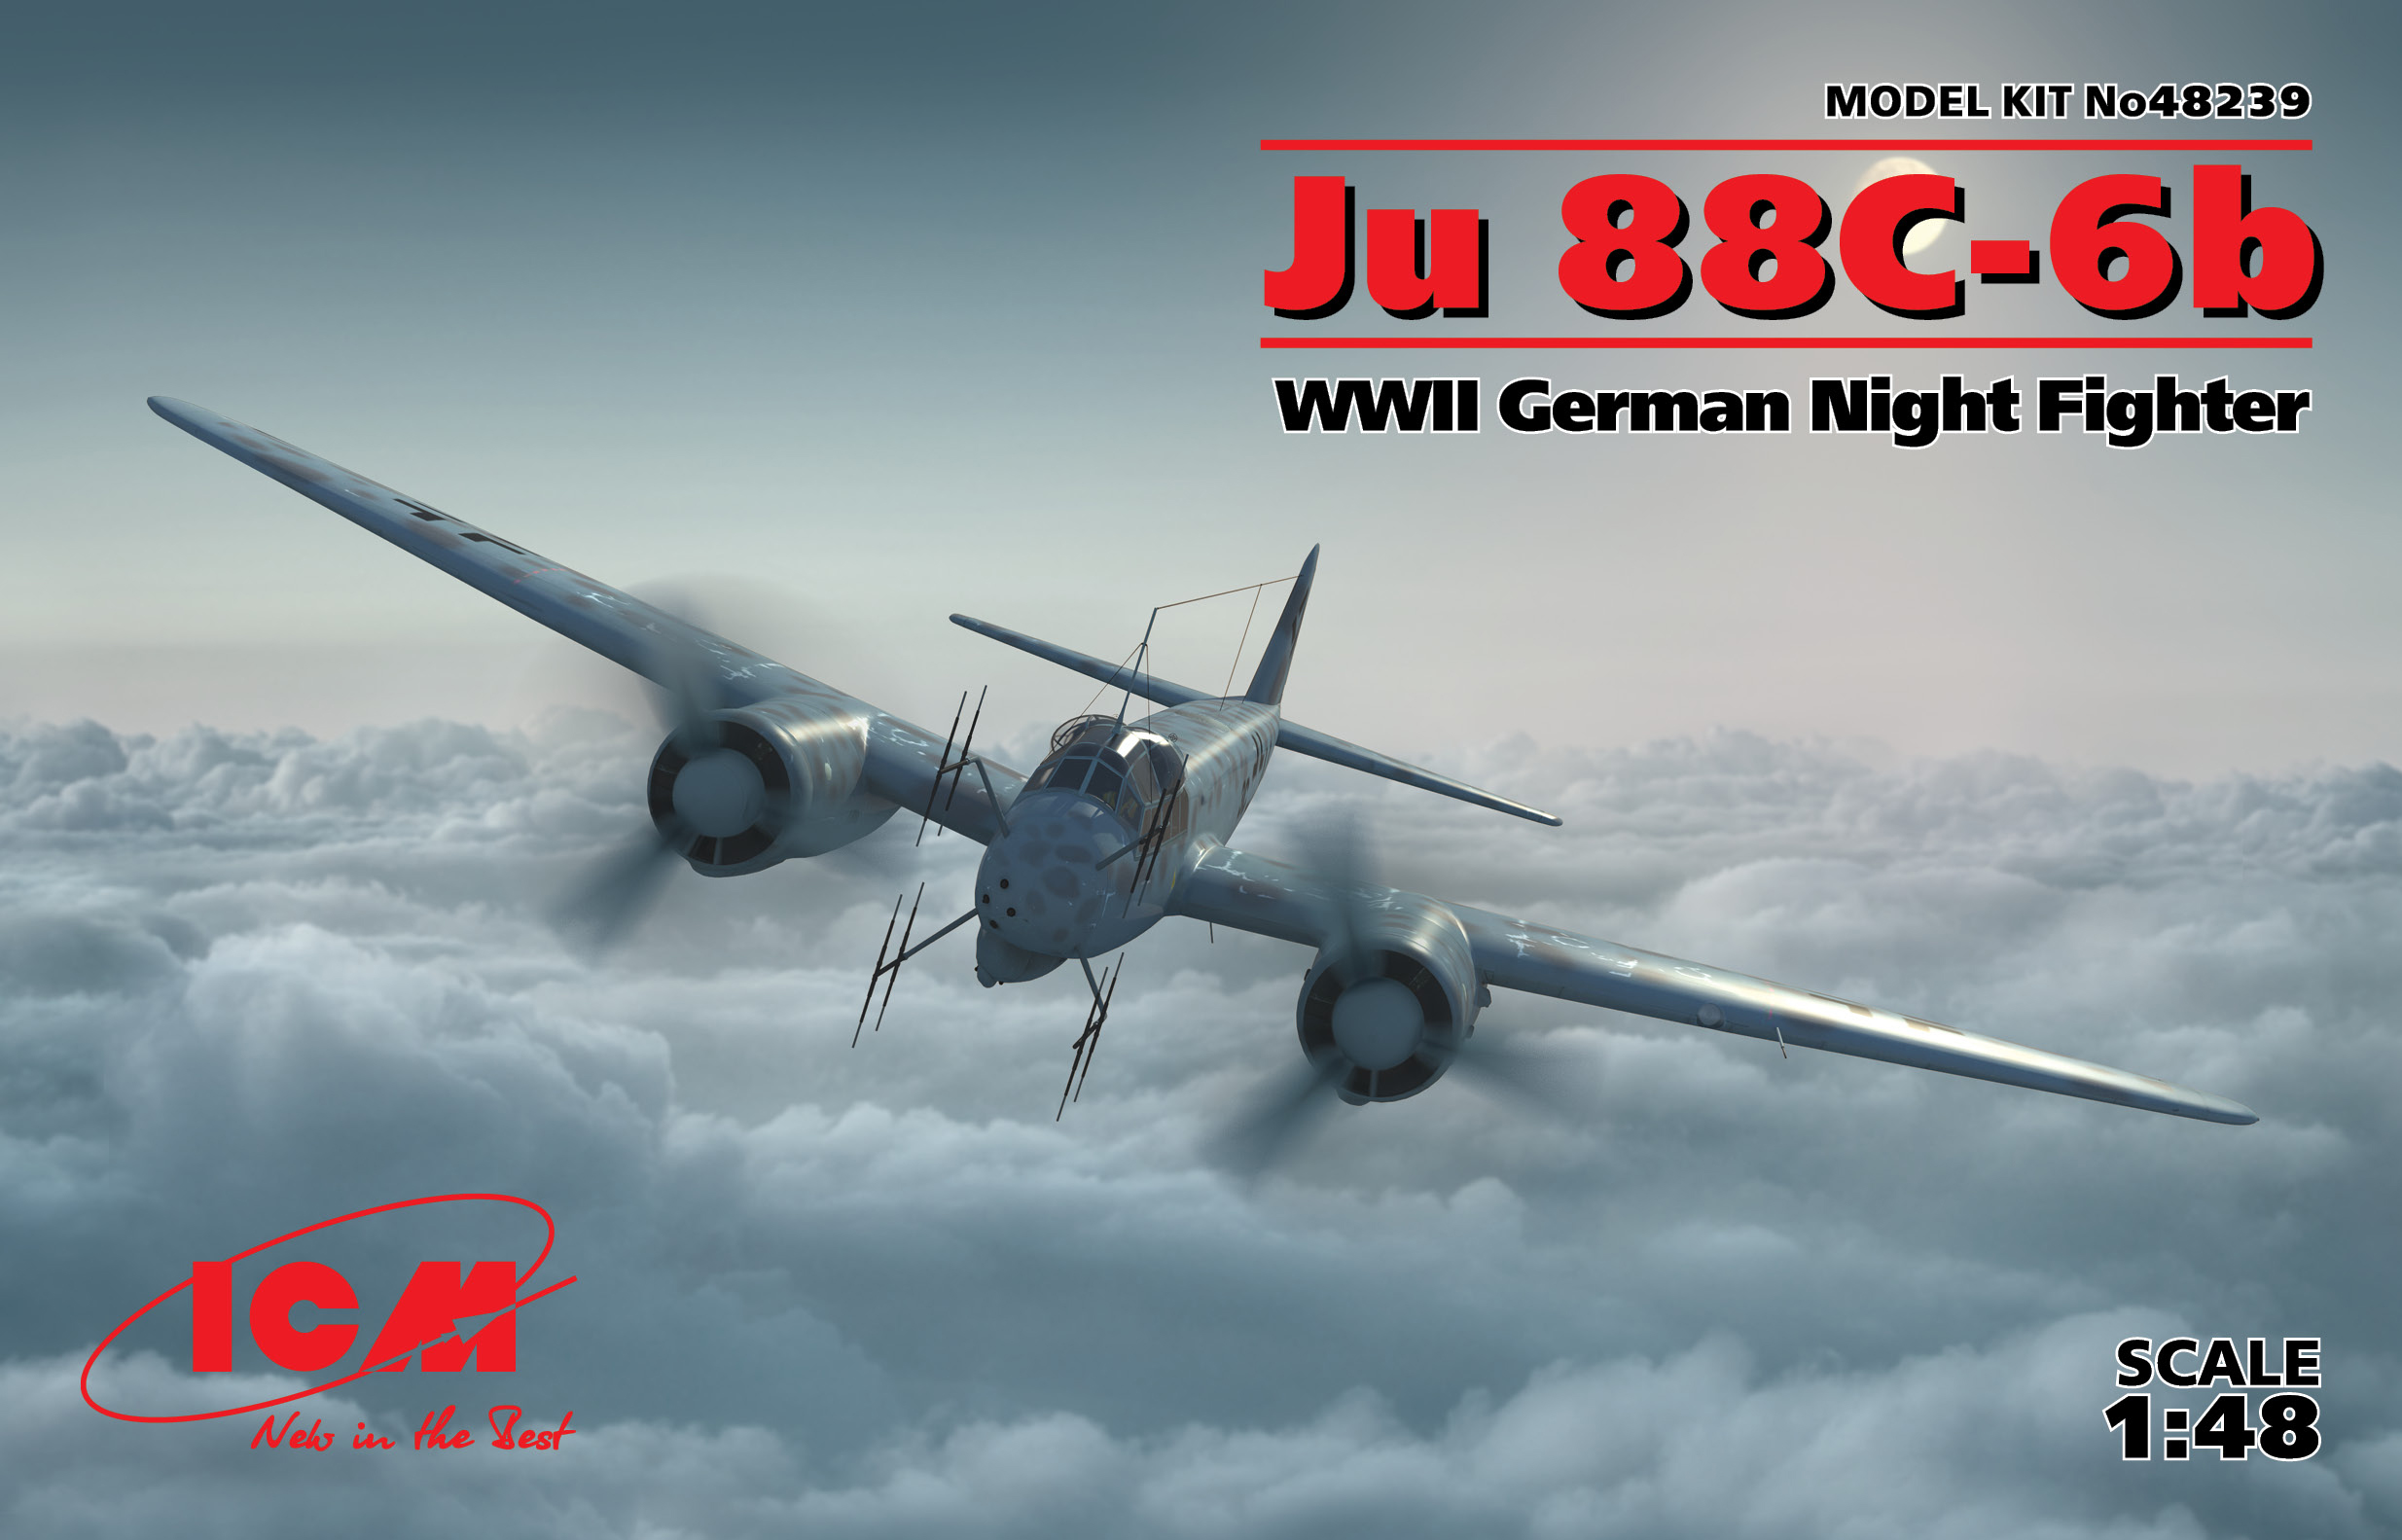 ICM Ju 88_-6b, WWII German Night Fighter